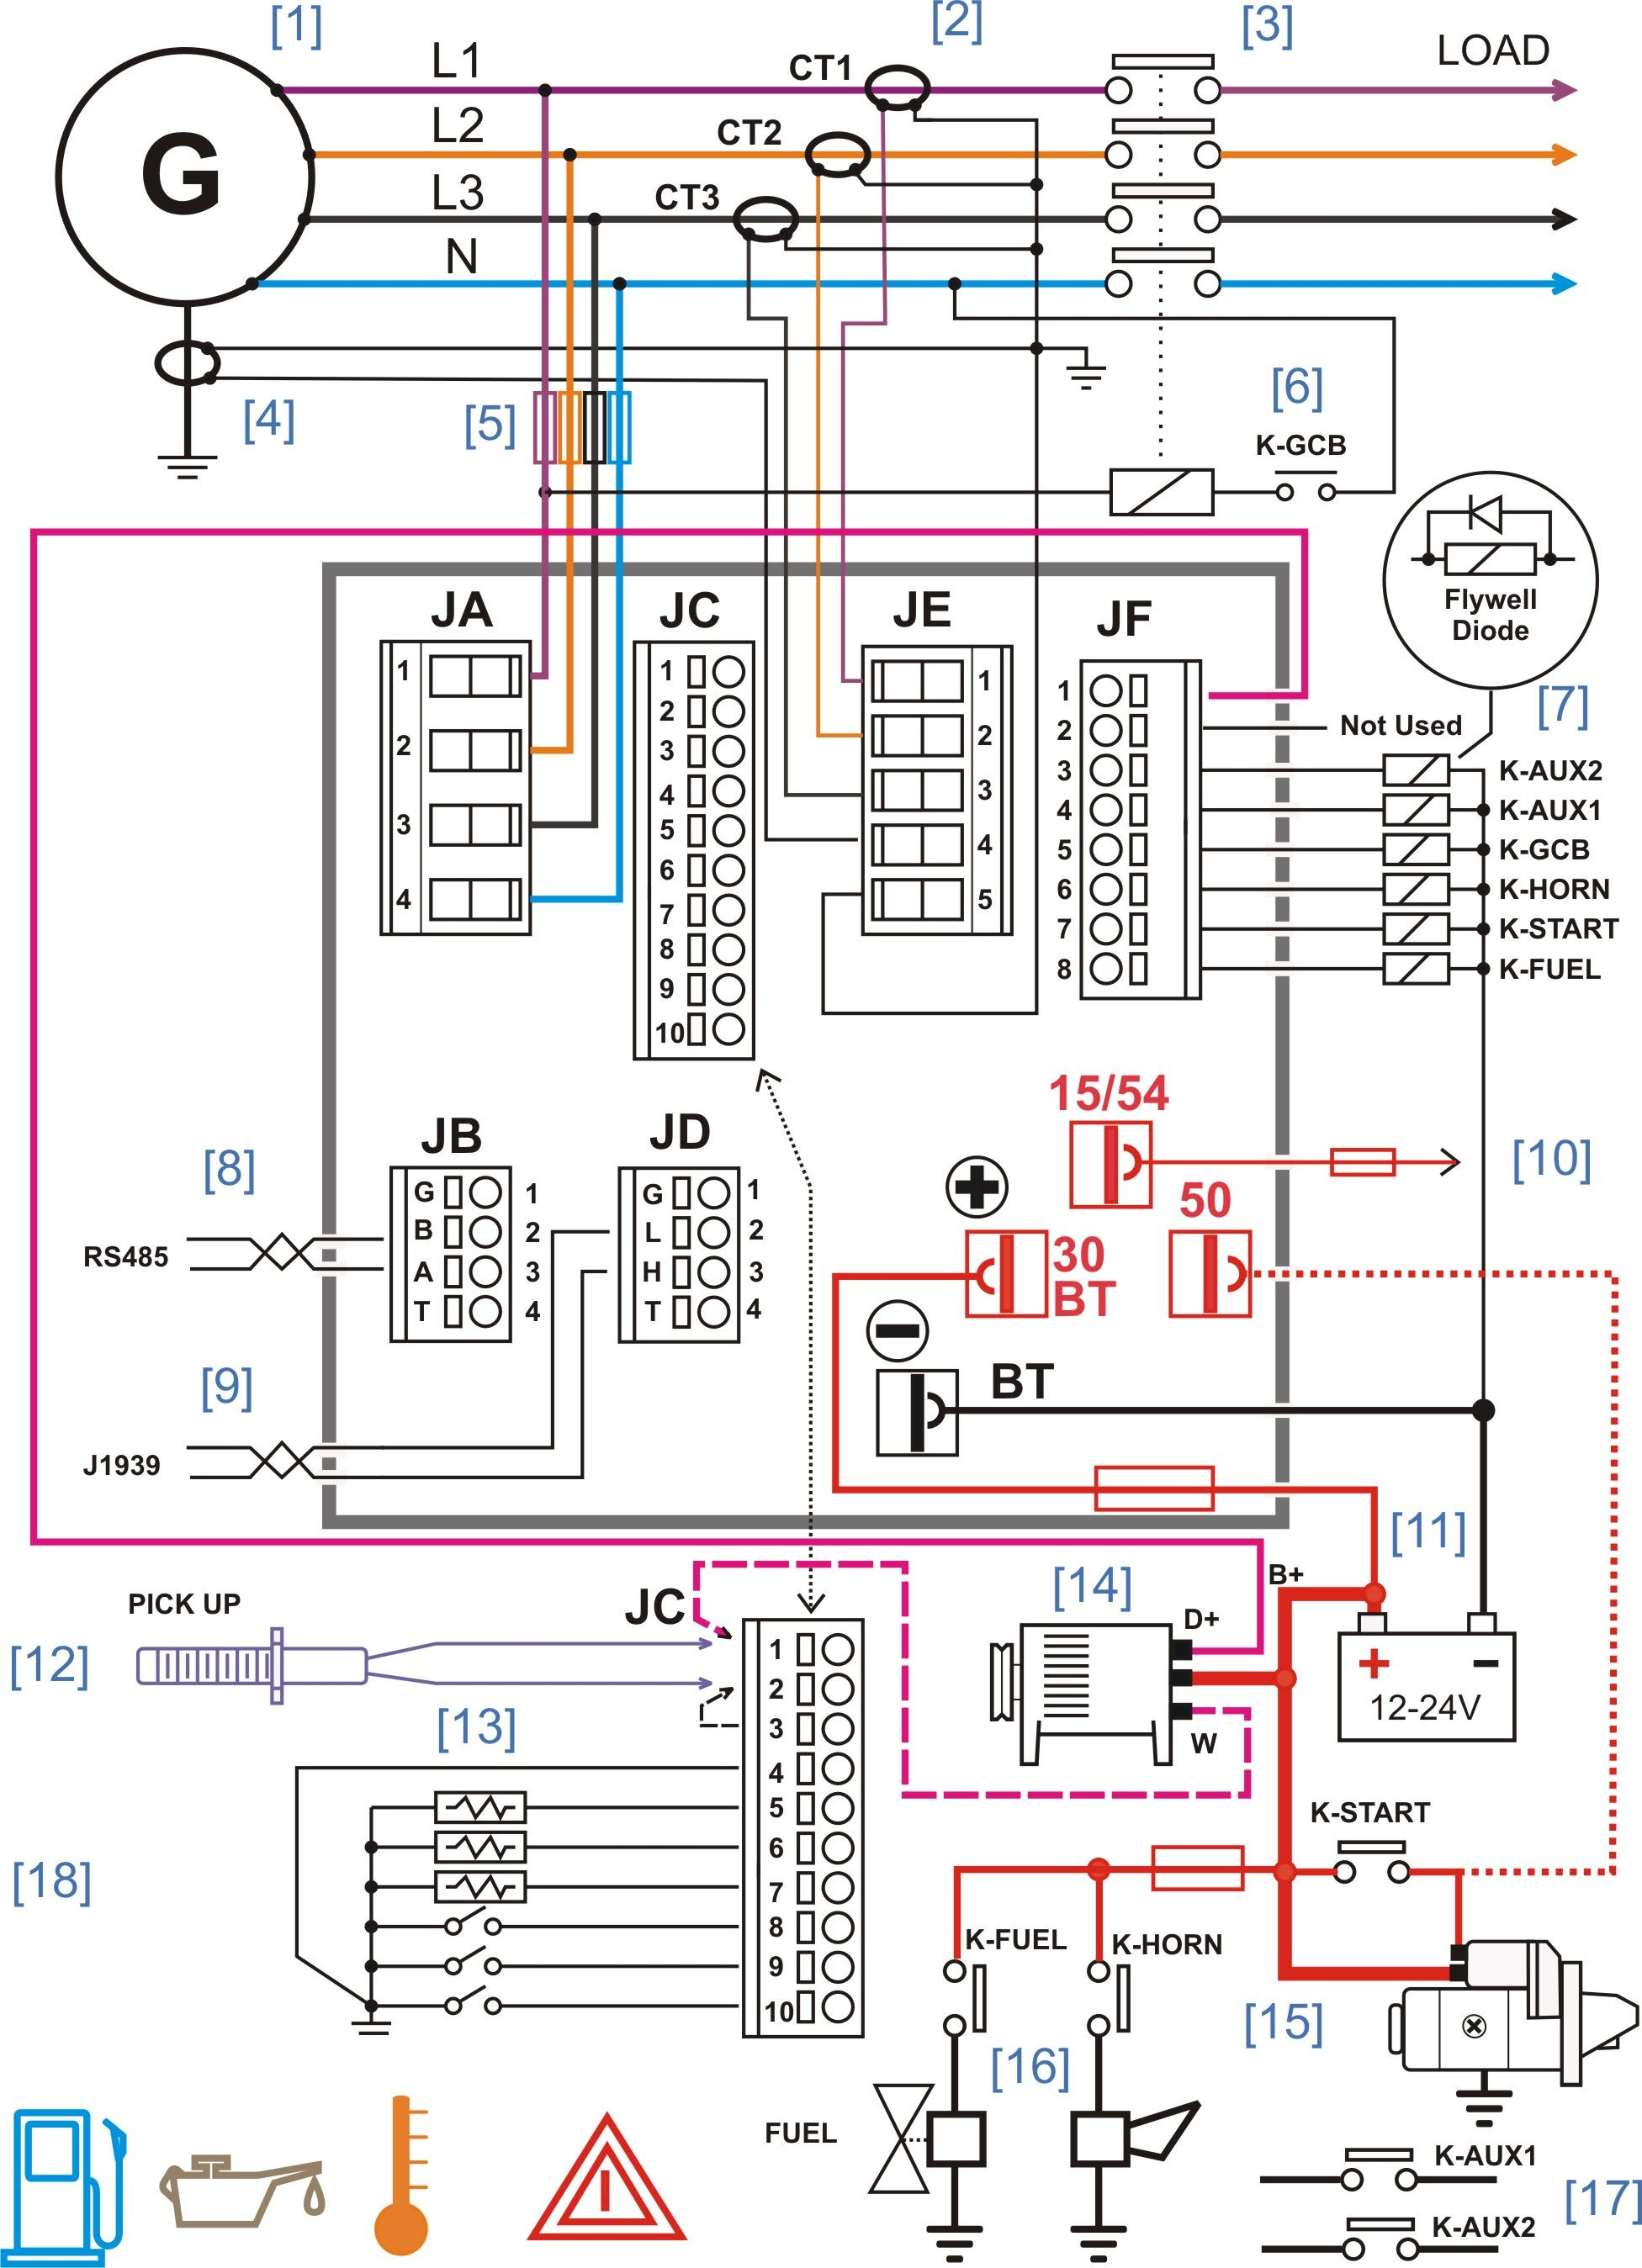 european industrial wiring diagrams wiring diagram nav rh 20 sdfgqwrt ti oe de reading industrial wiring diagrams industrial electrical wiring diagrams free download